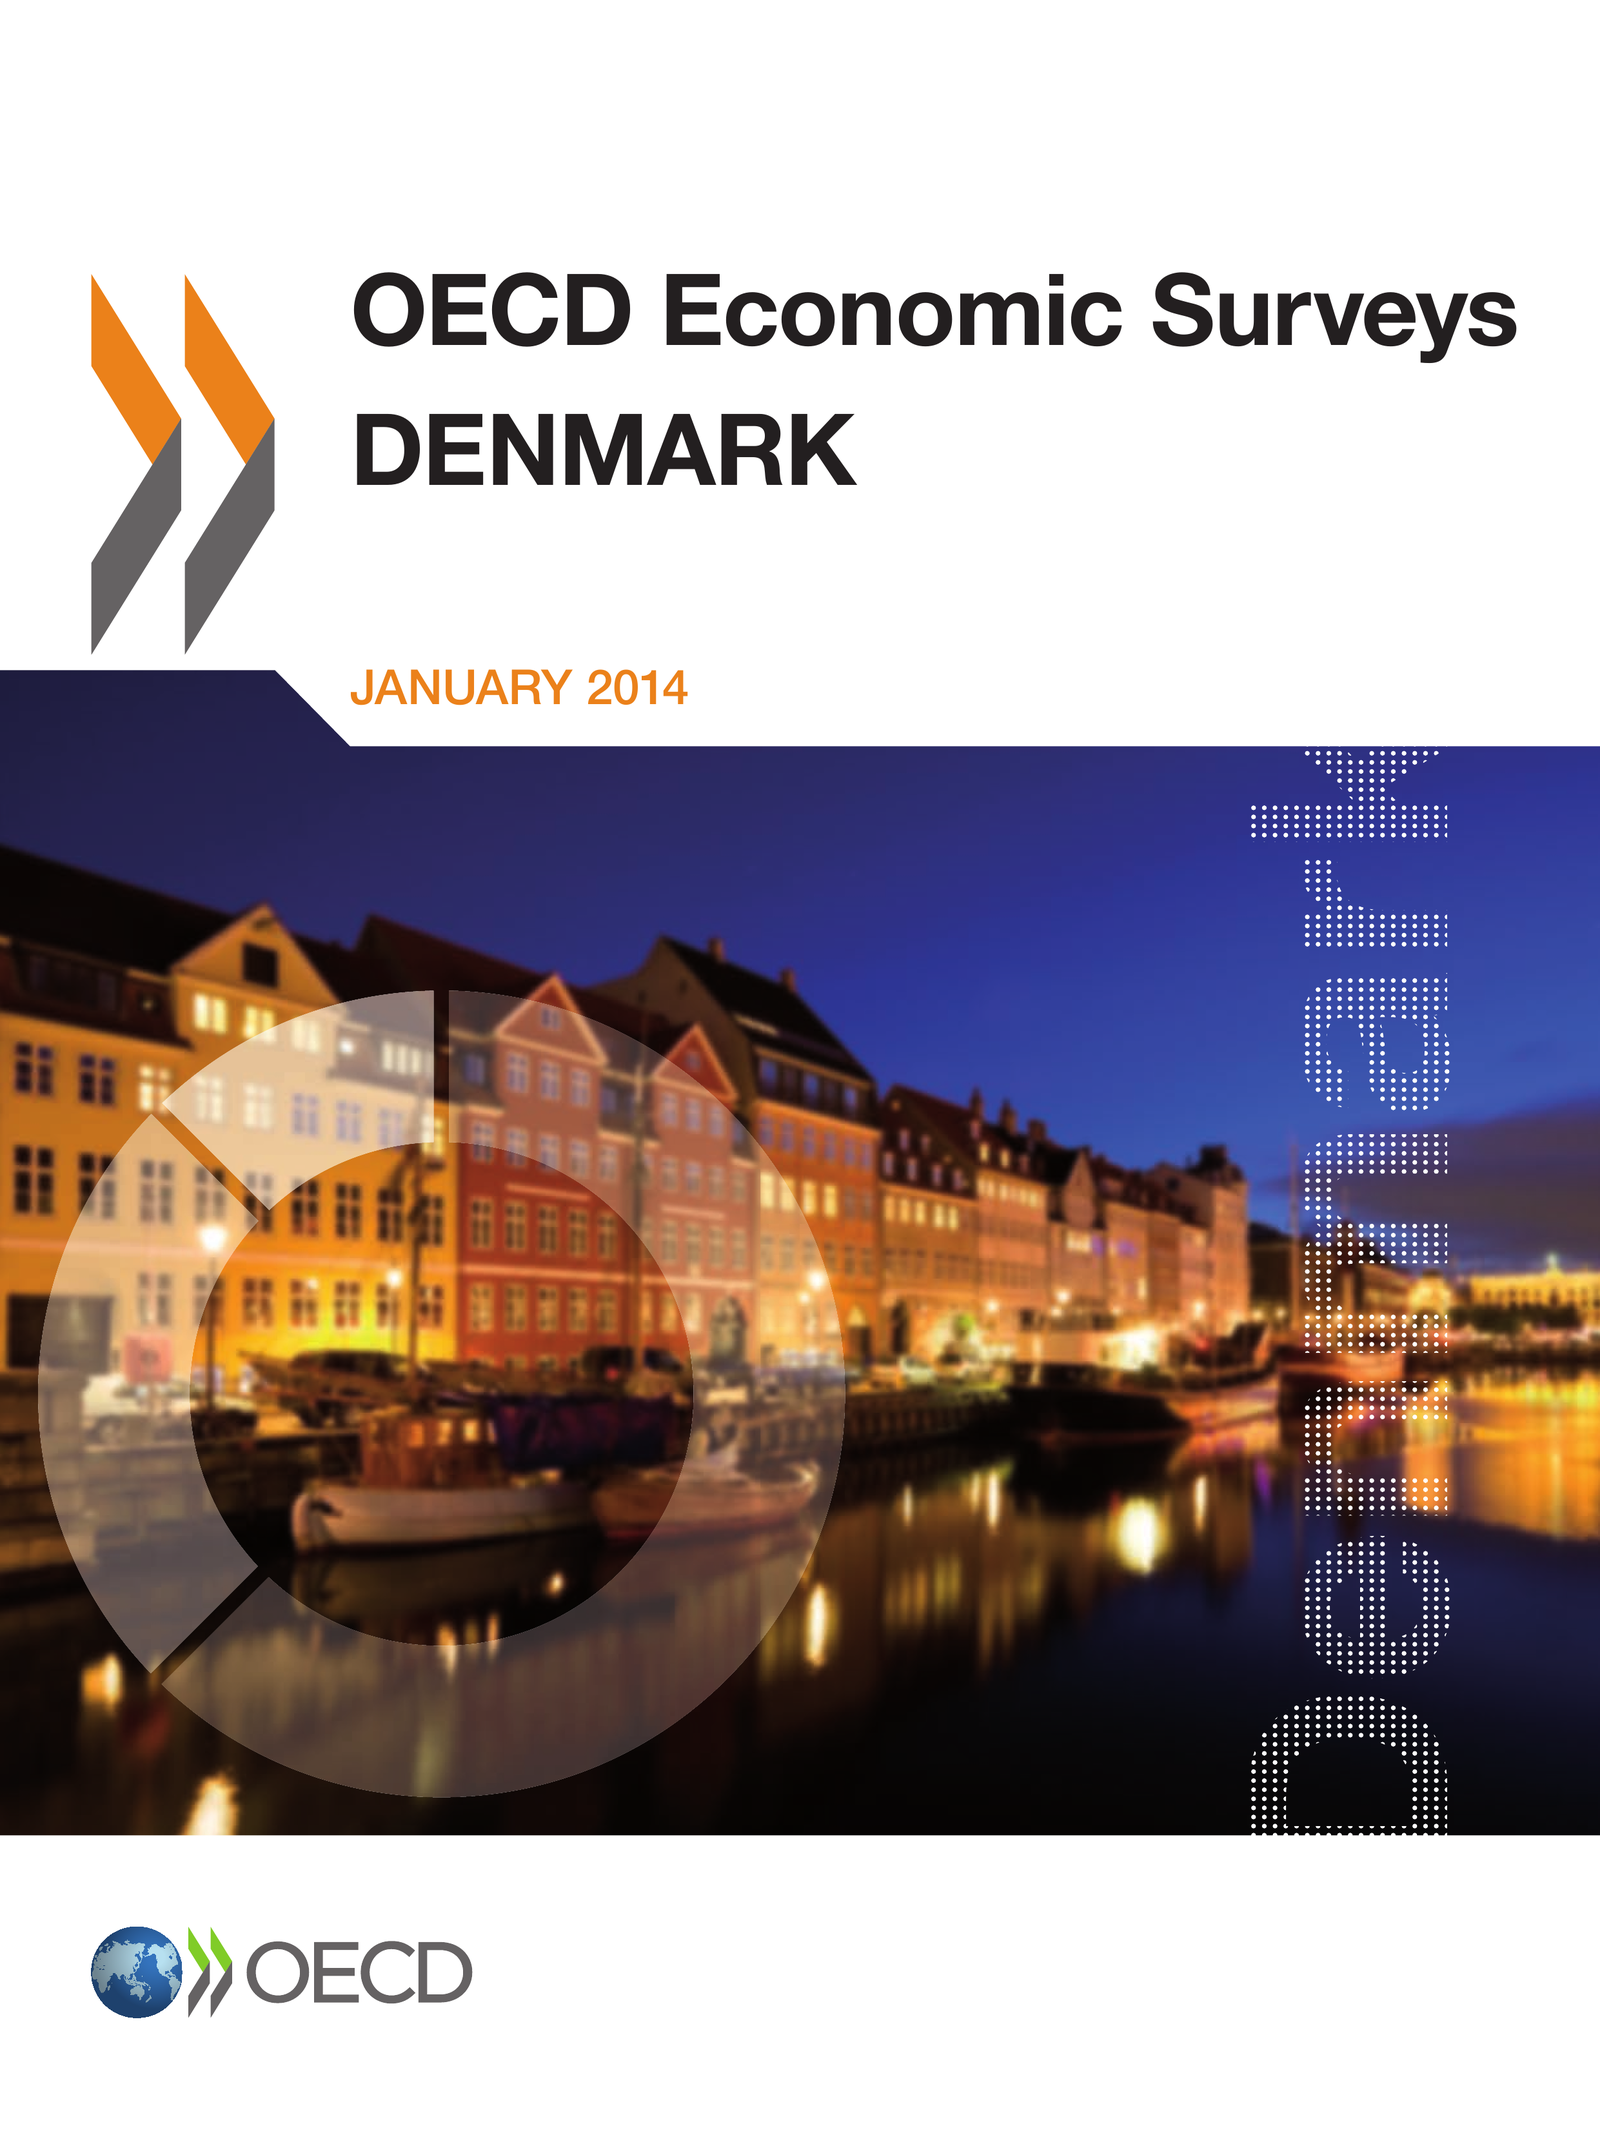 OECD Economic Surveys: Denmark 2013